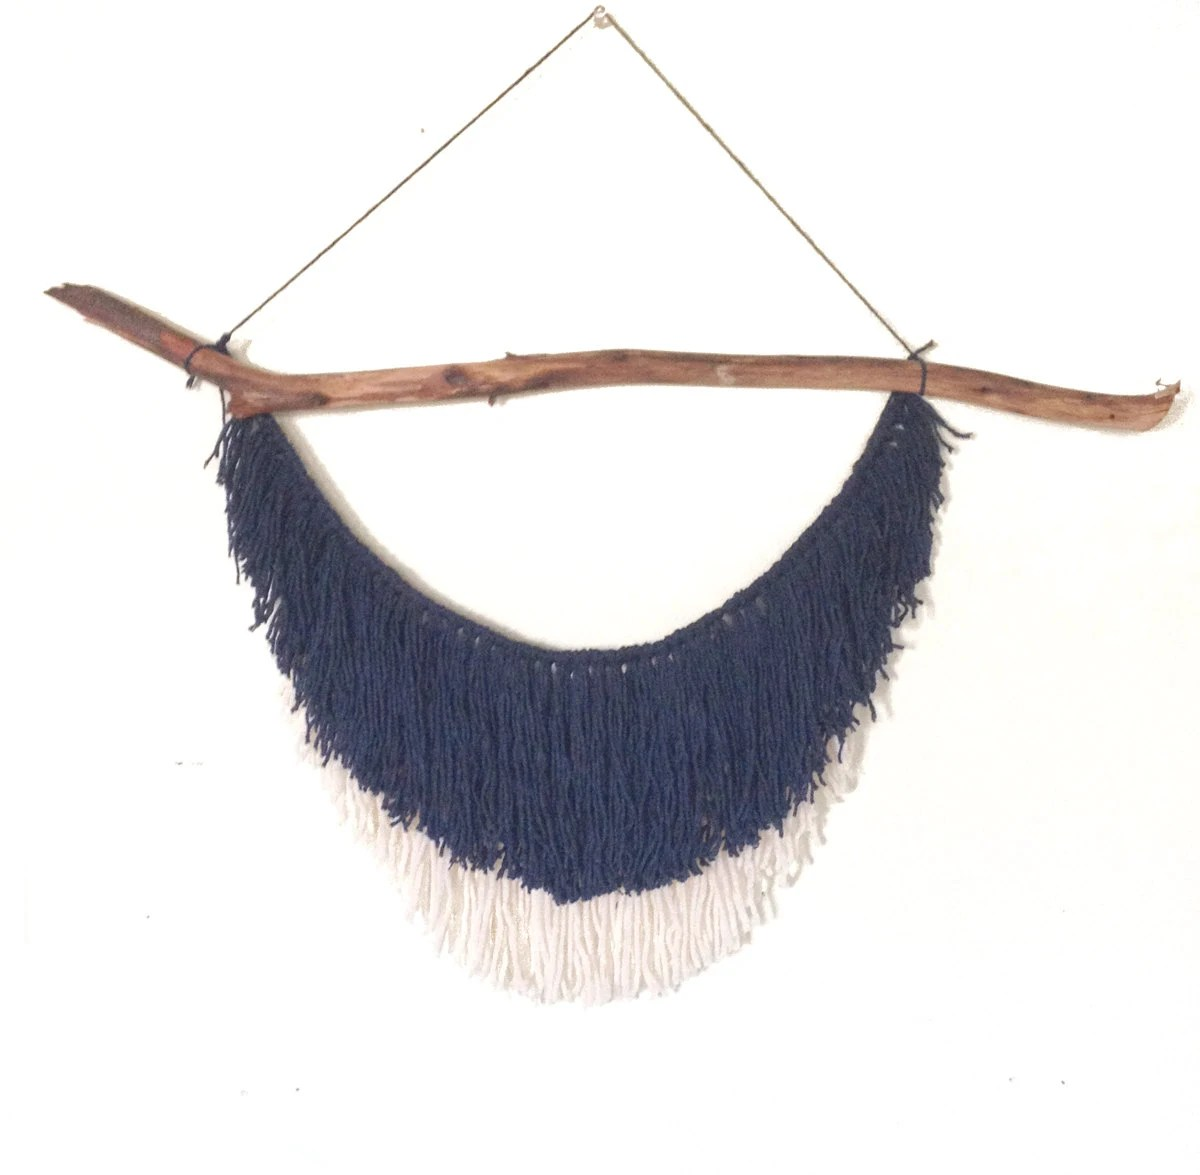 Items Similar To Crescent Moon Wallhanging On Etsy